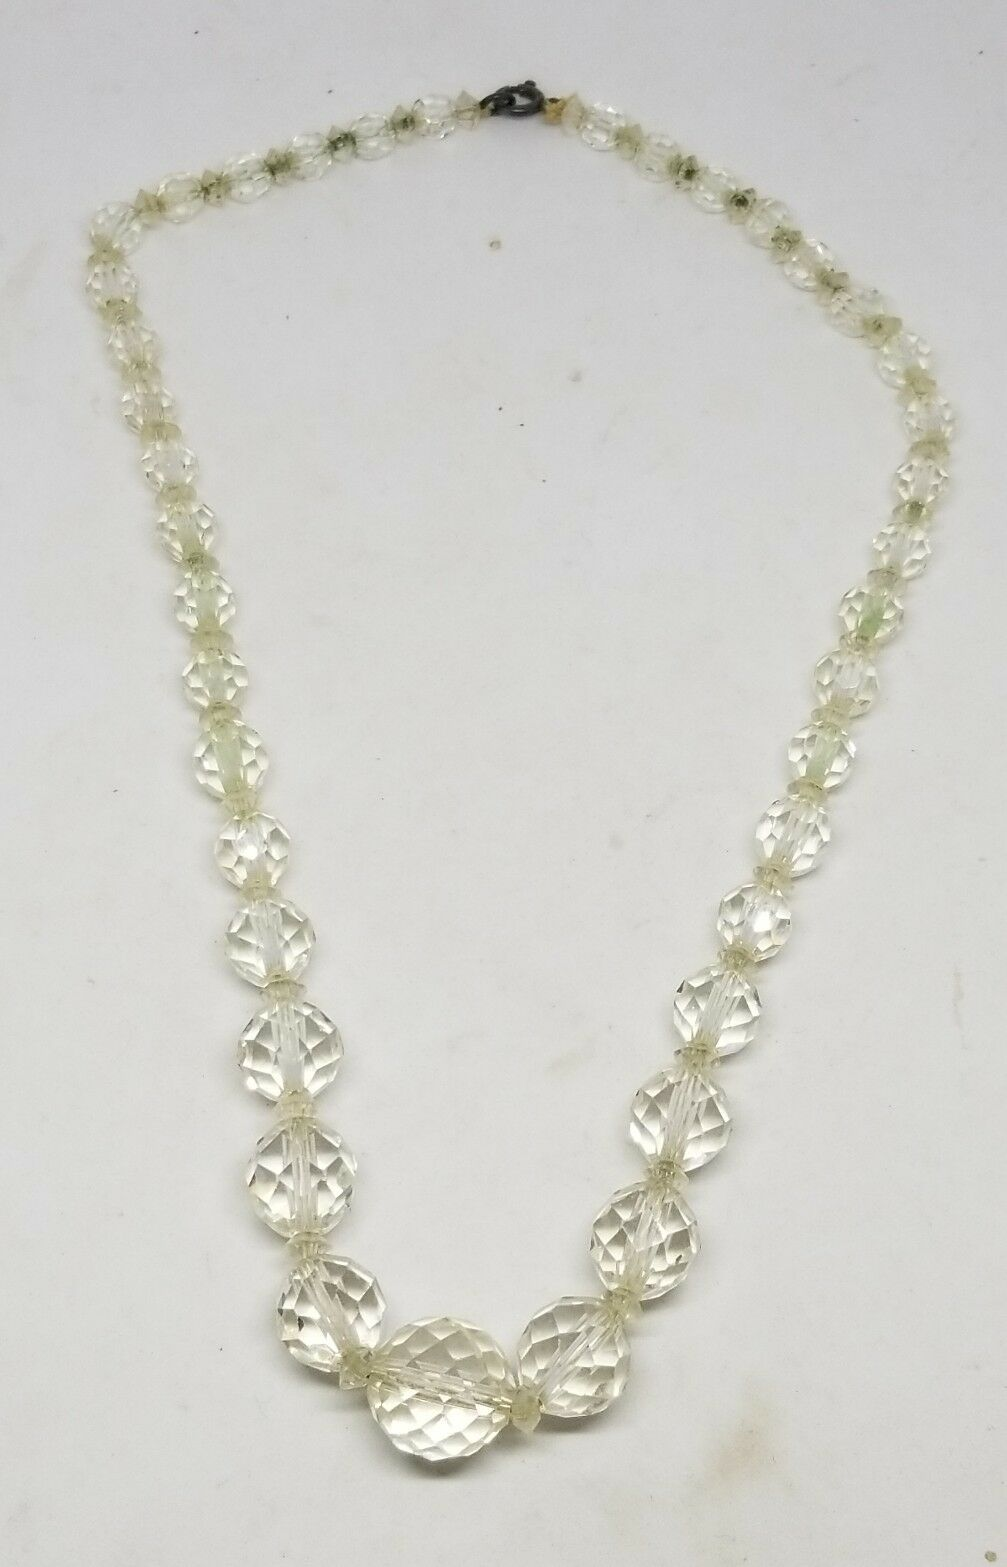 Vintage Sterling Silver Faceted Rock Crystal Graduated Necklace